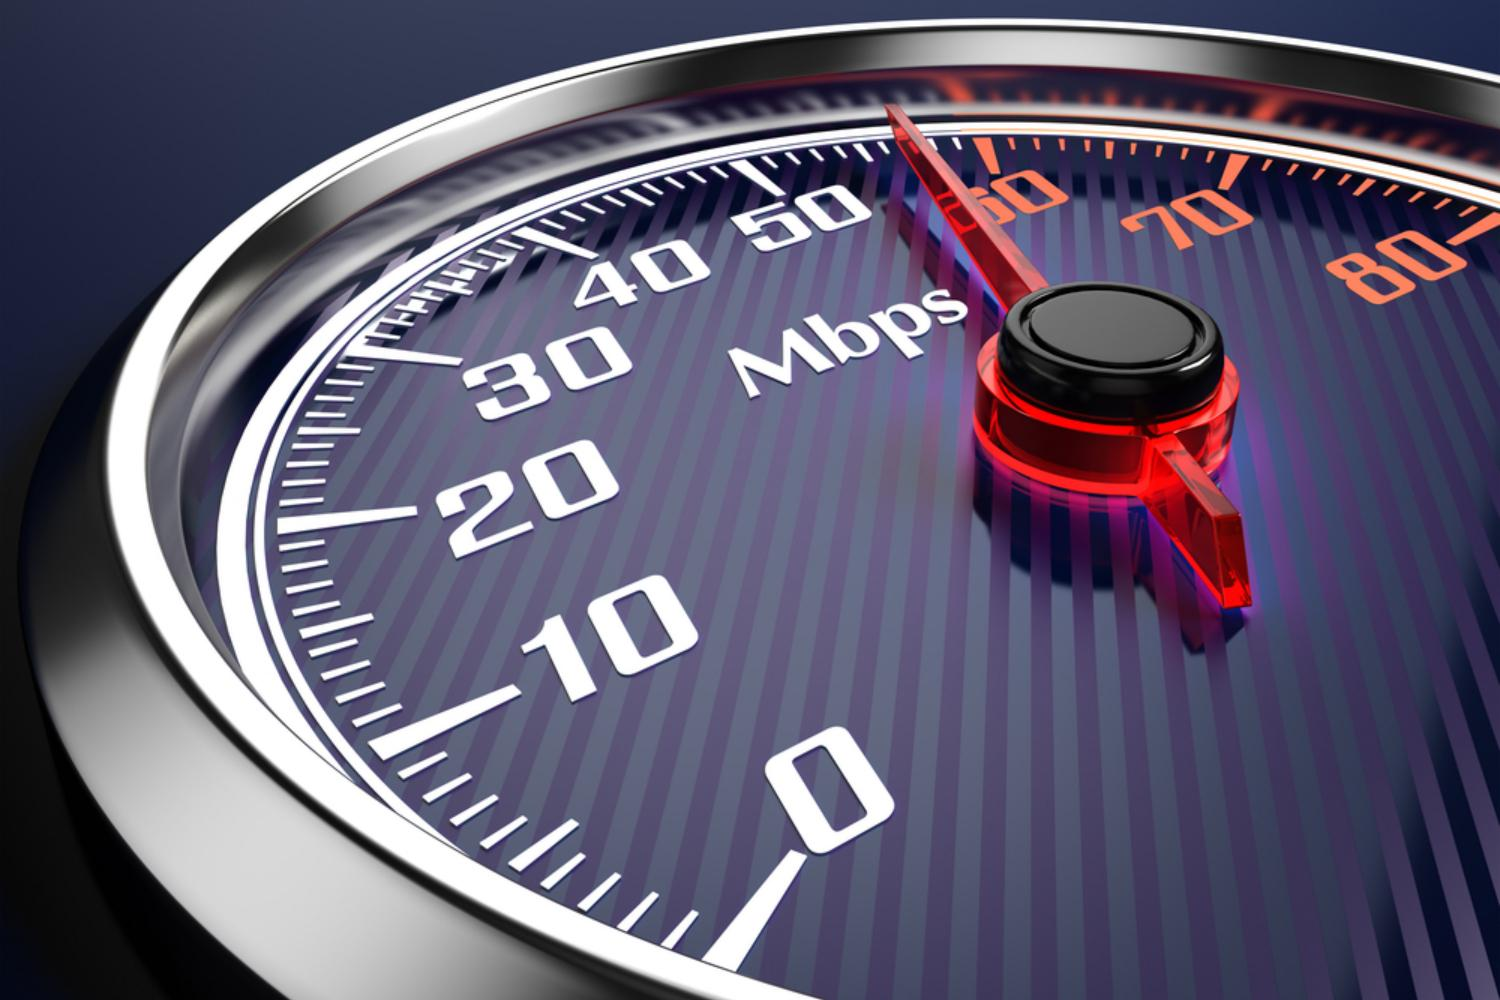 Broadband Speed | Lifestan